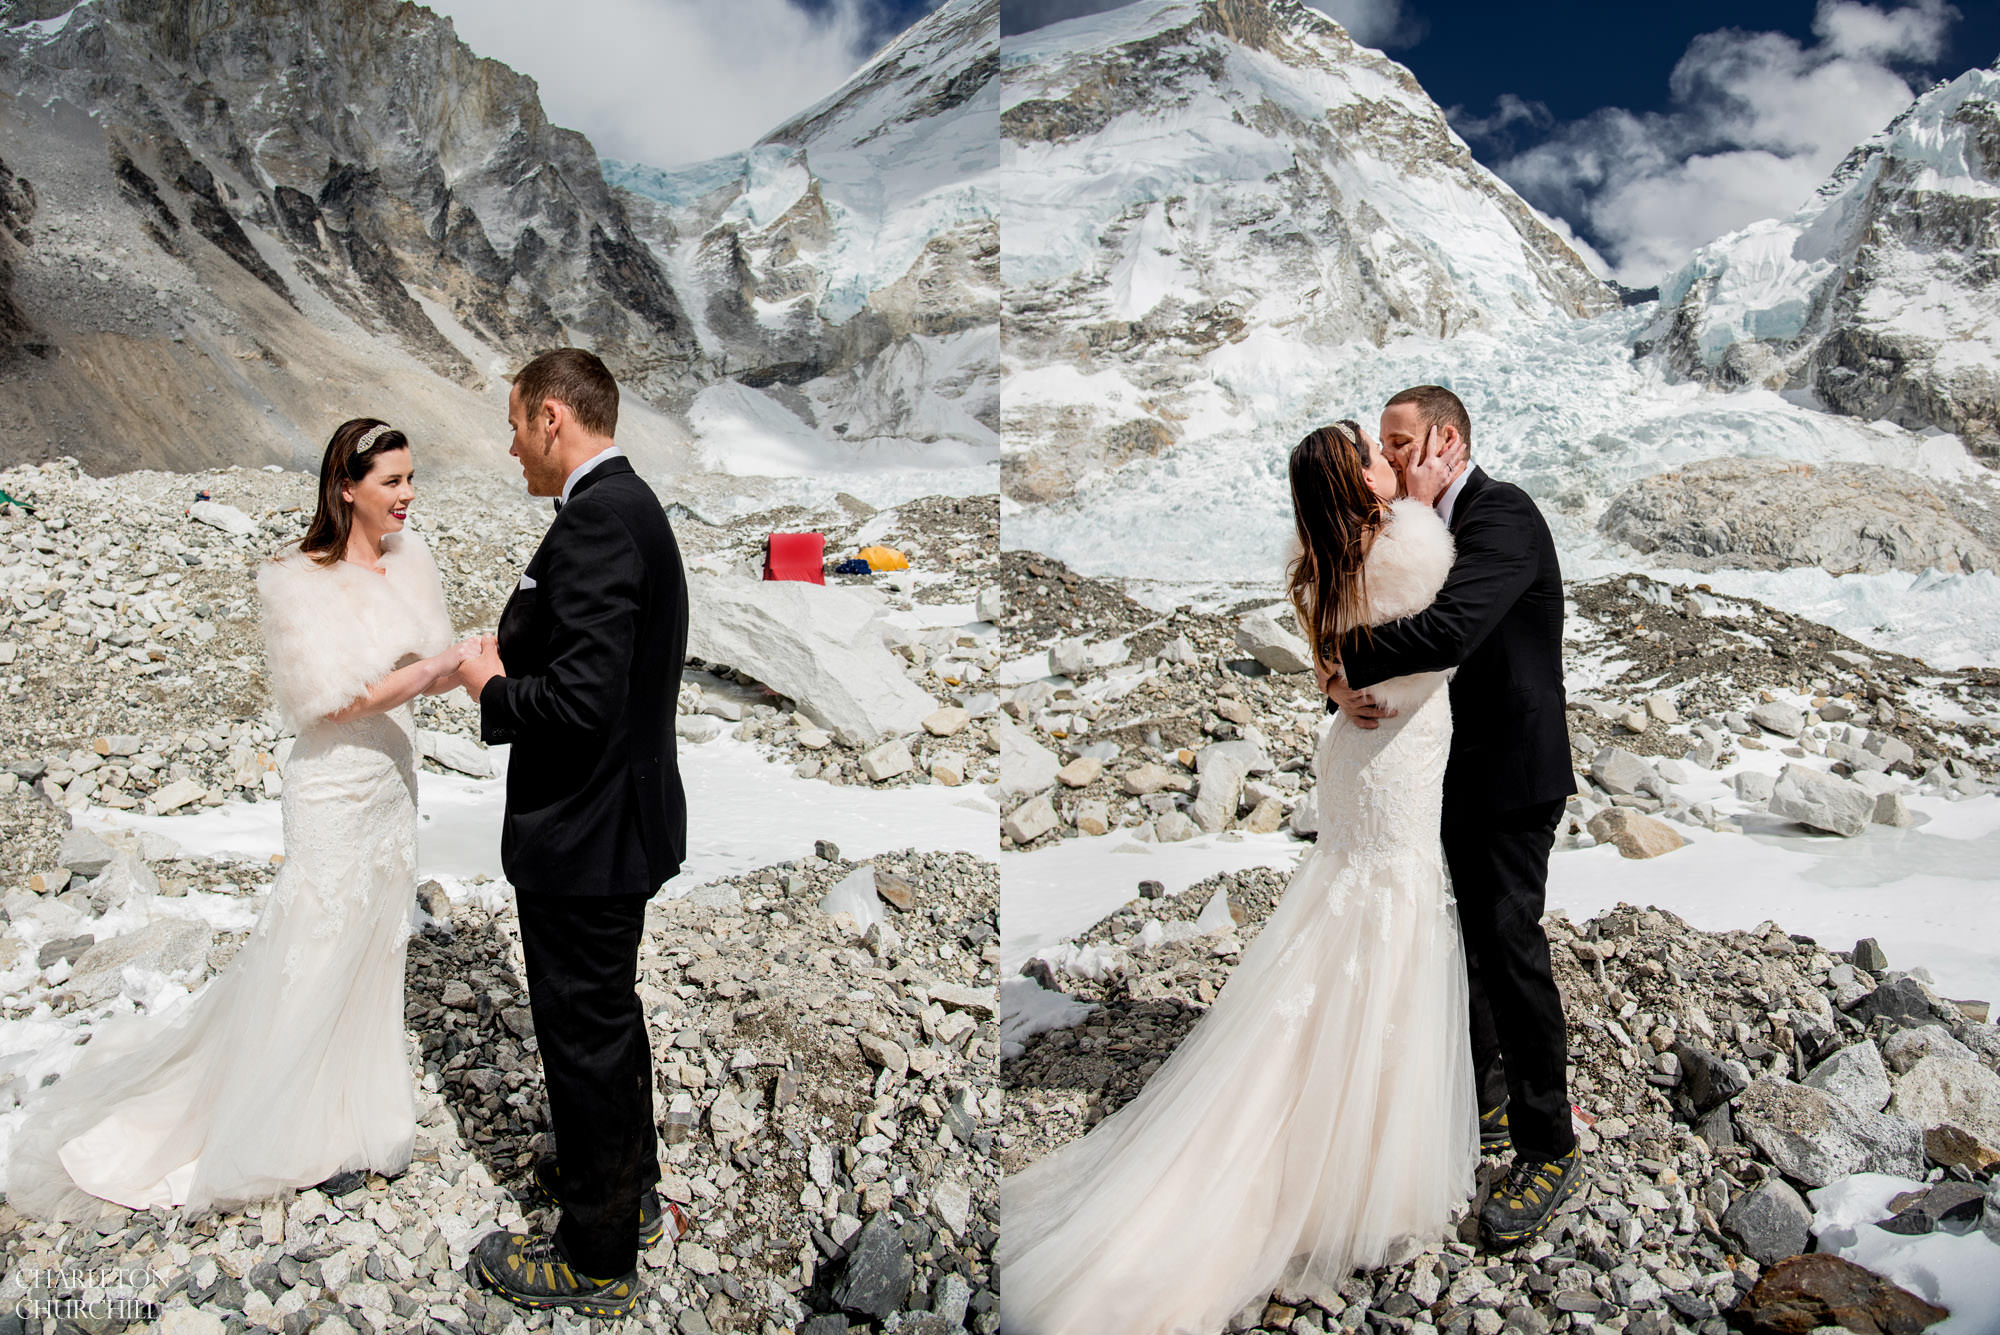 Wedding couple gets married on everest and kisses near ice-fall of the khumbu region